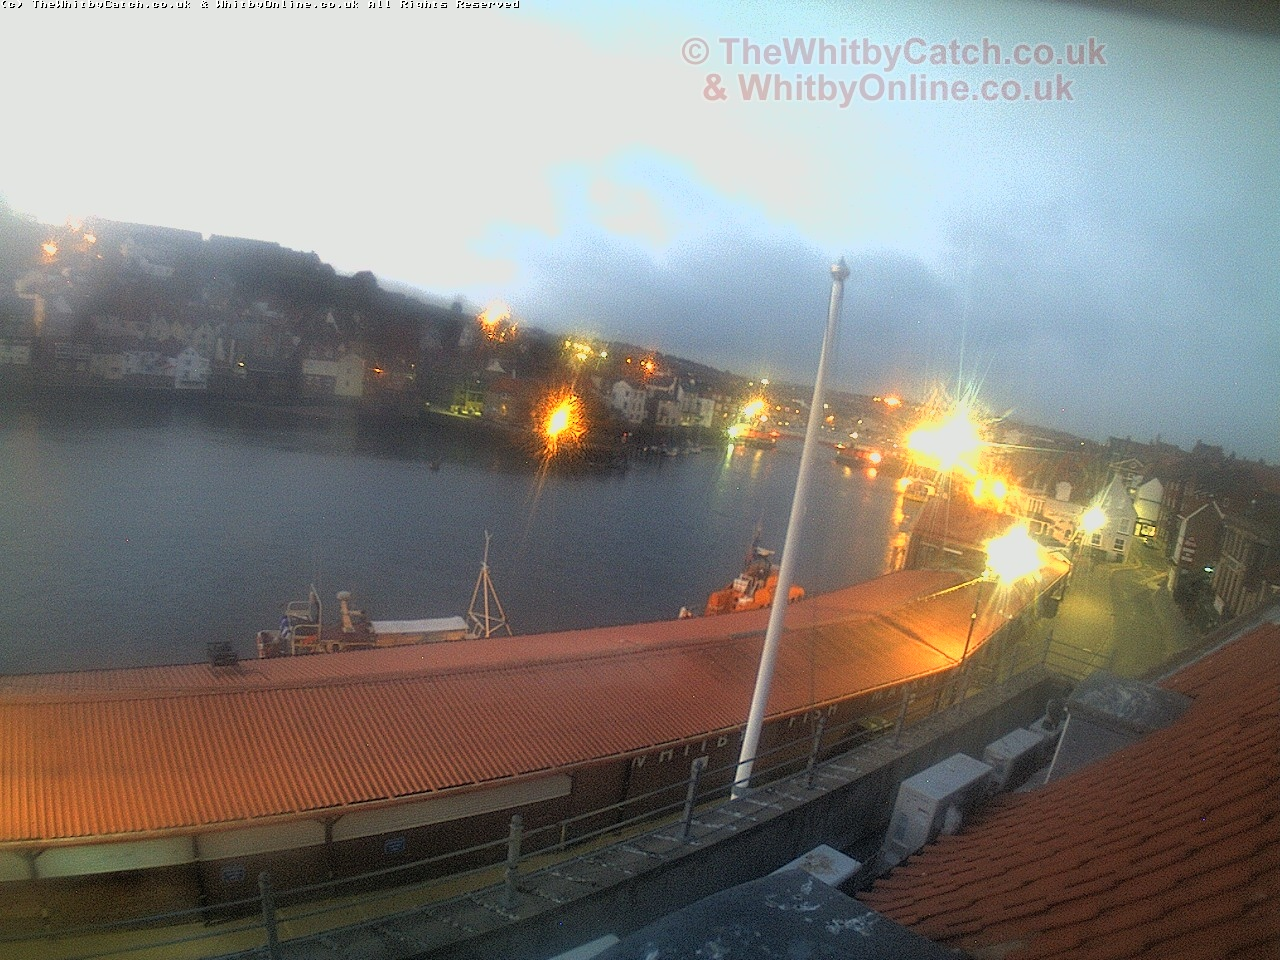 Whitby Sun 30th April 2017 04:52.